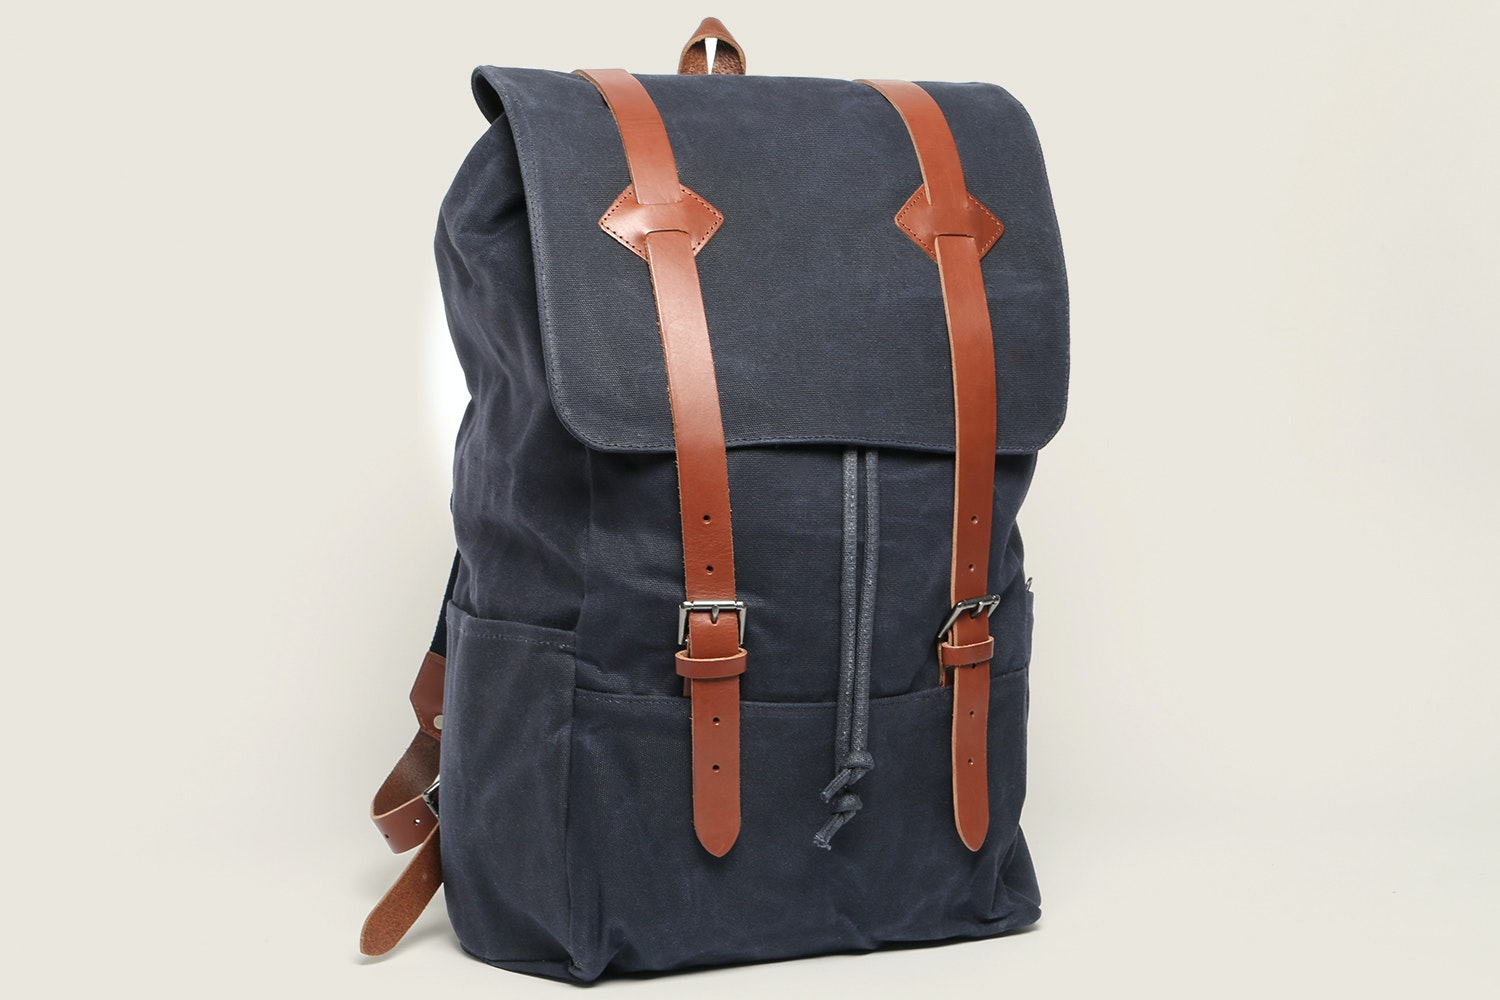 RPMWEST Quarter Century Duffels & Backpacks